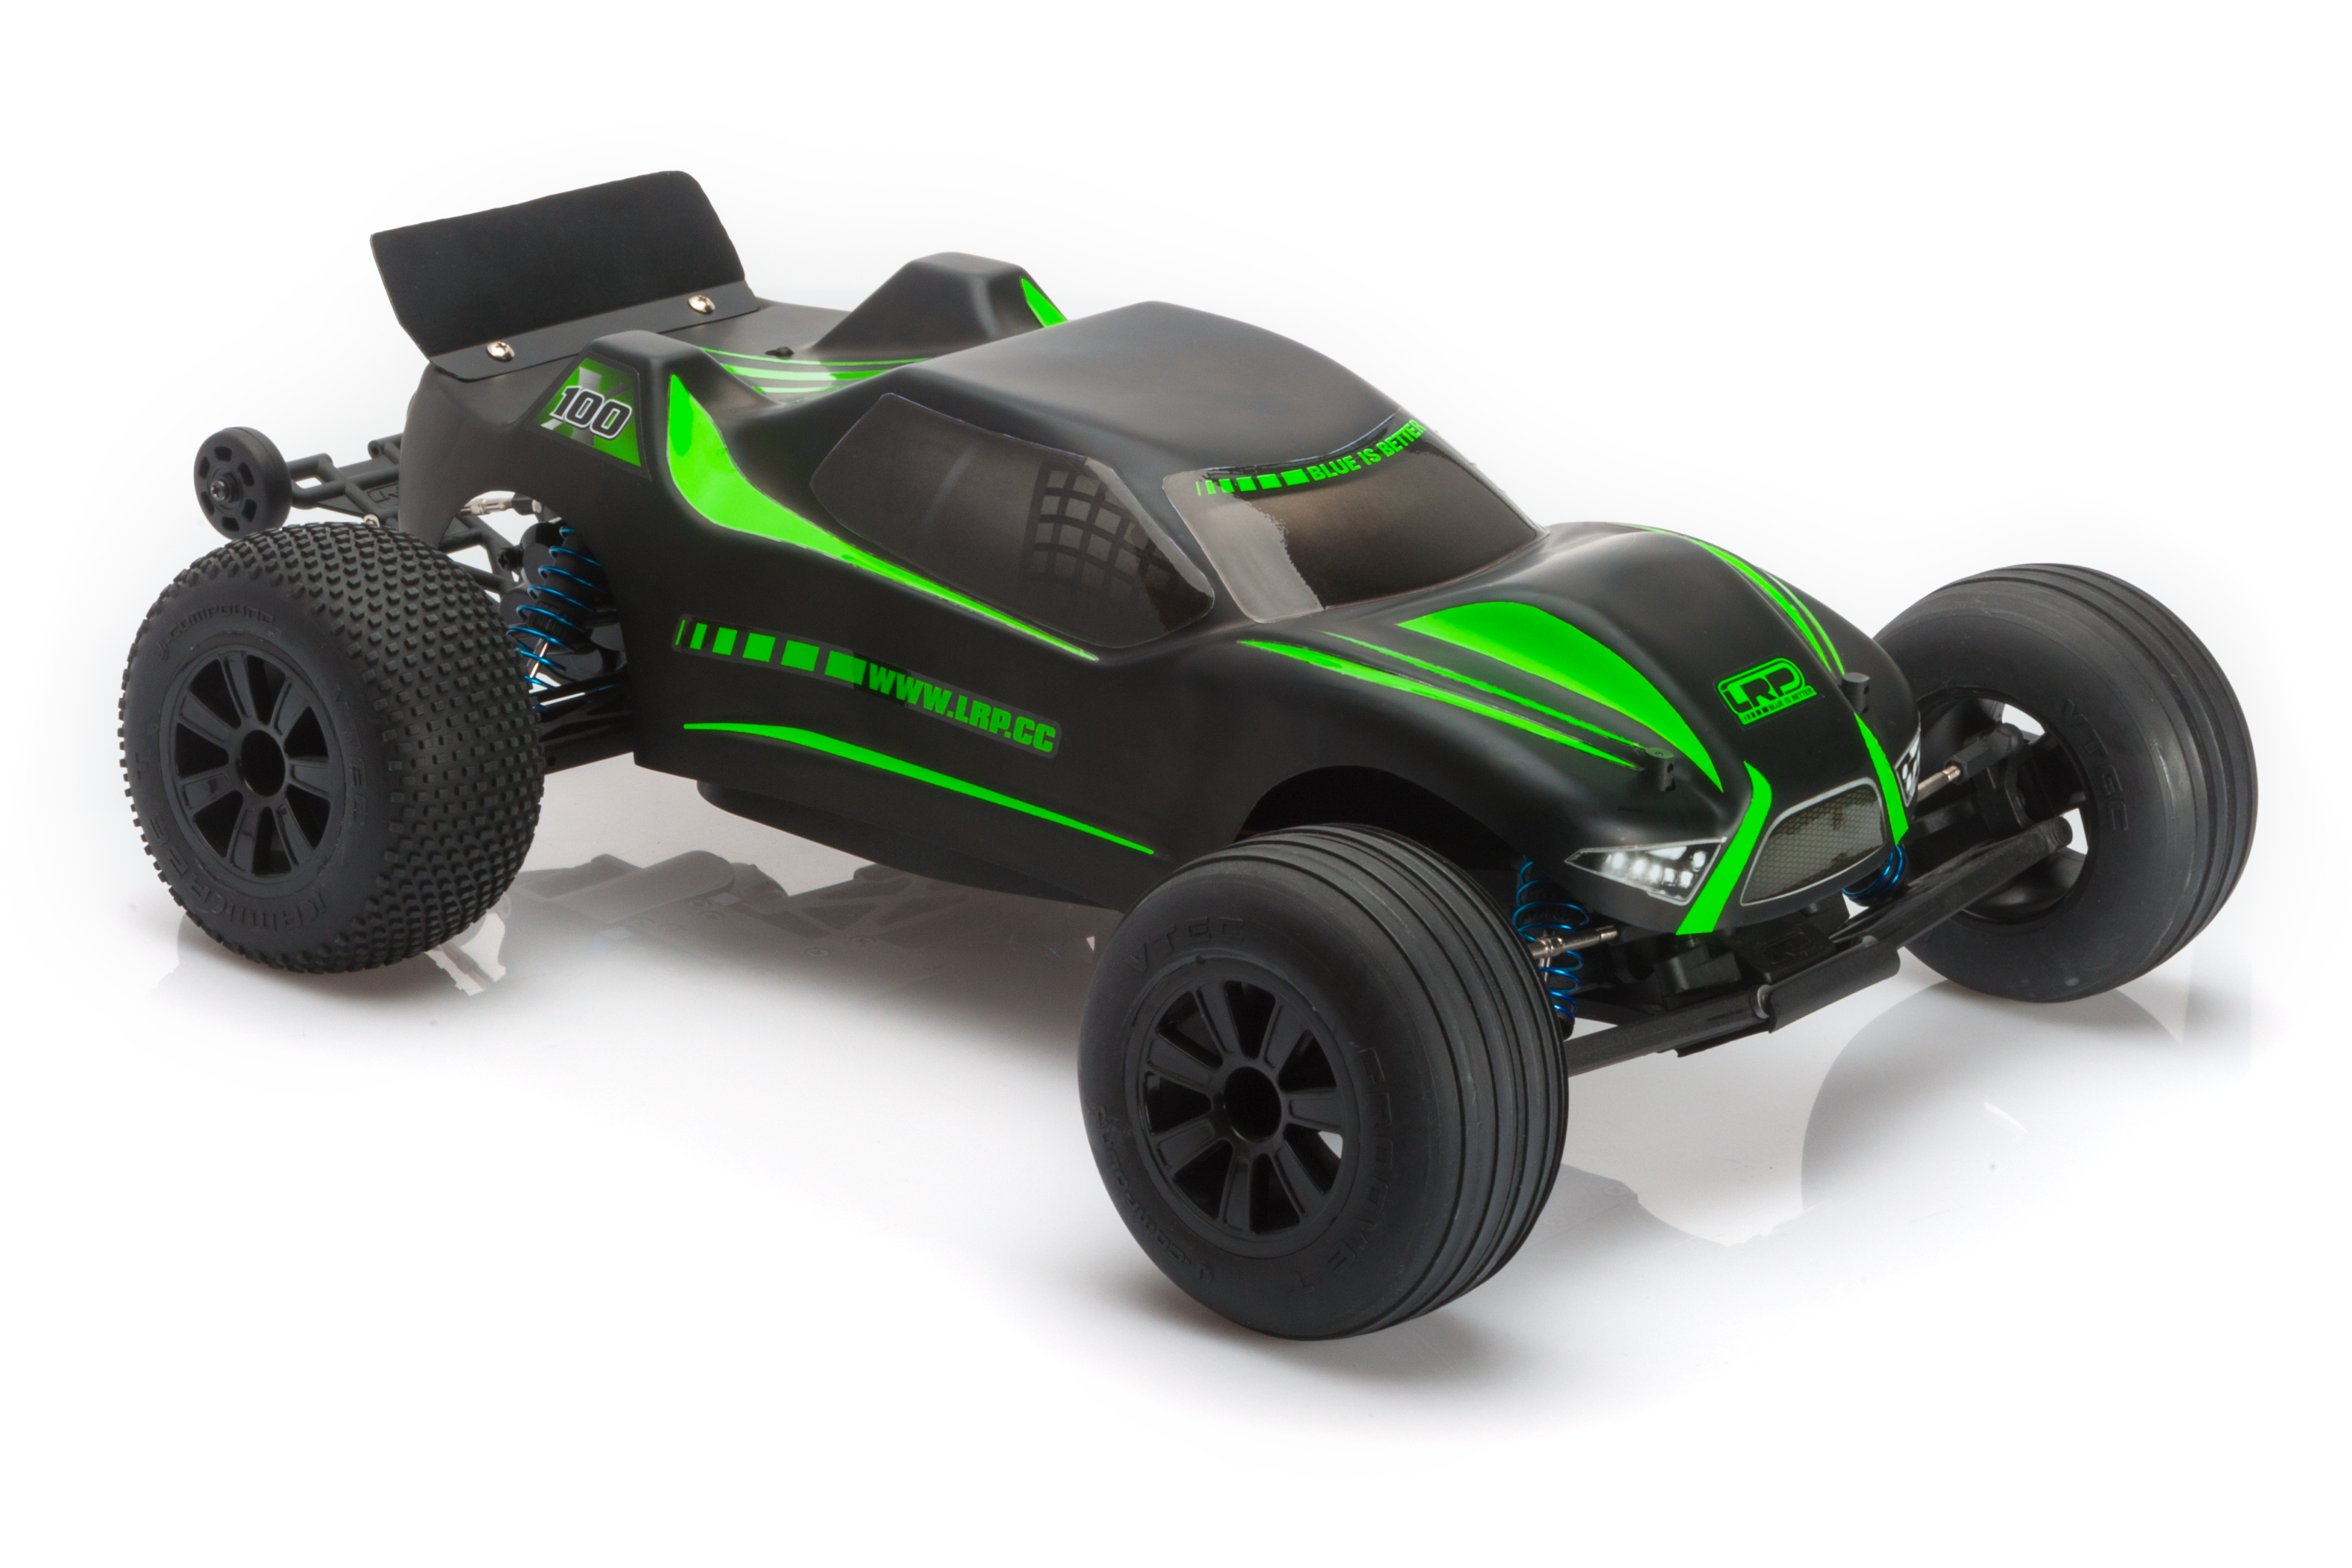 LRP S10 Twister 2 Extreme RTR Brushless Truggy 120512